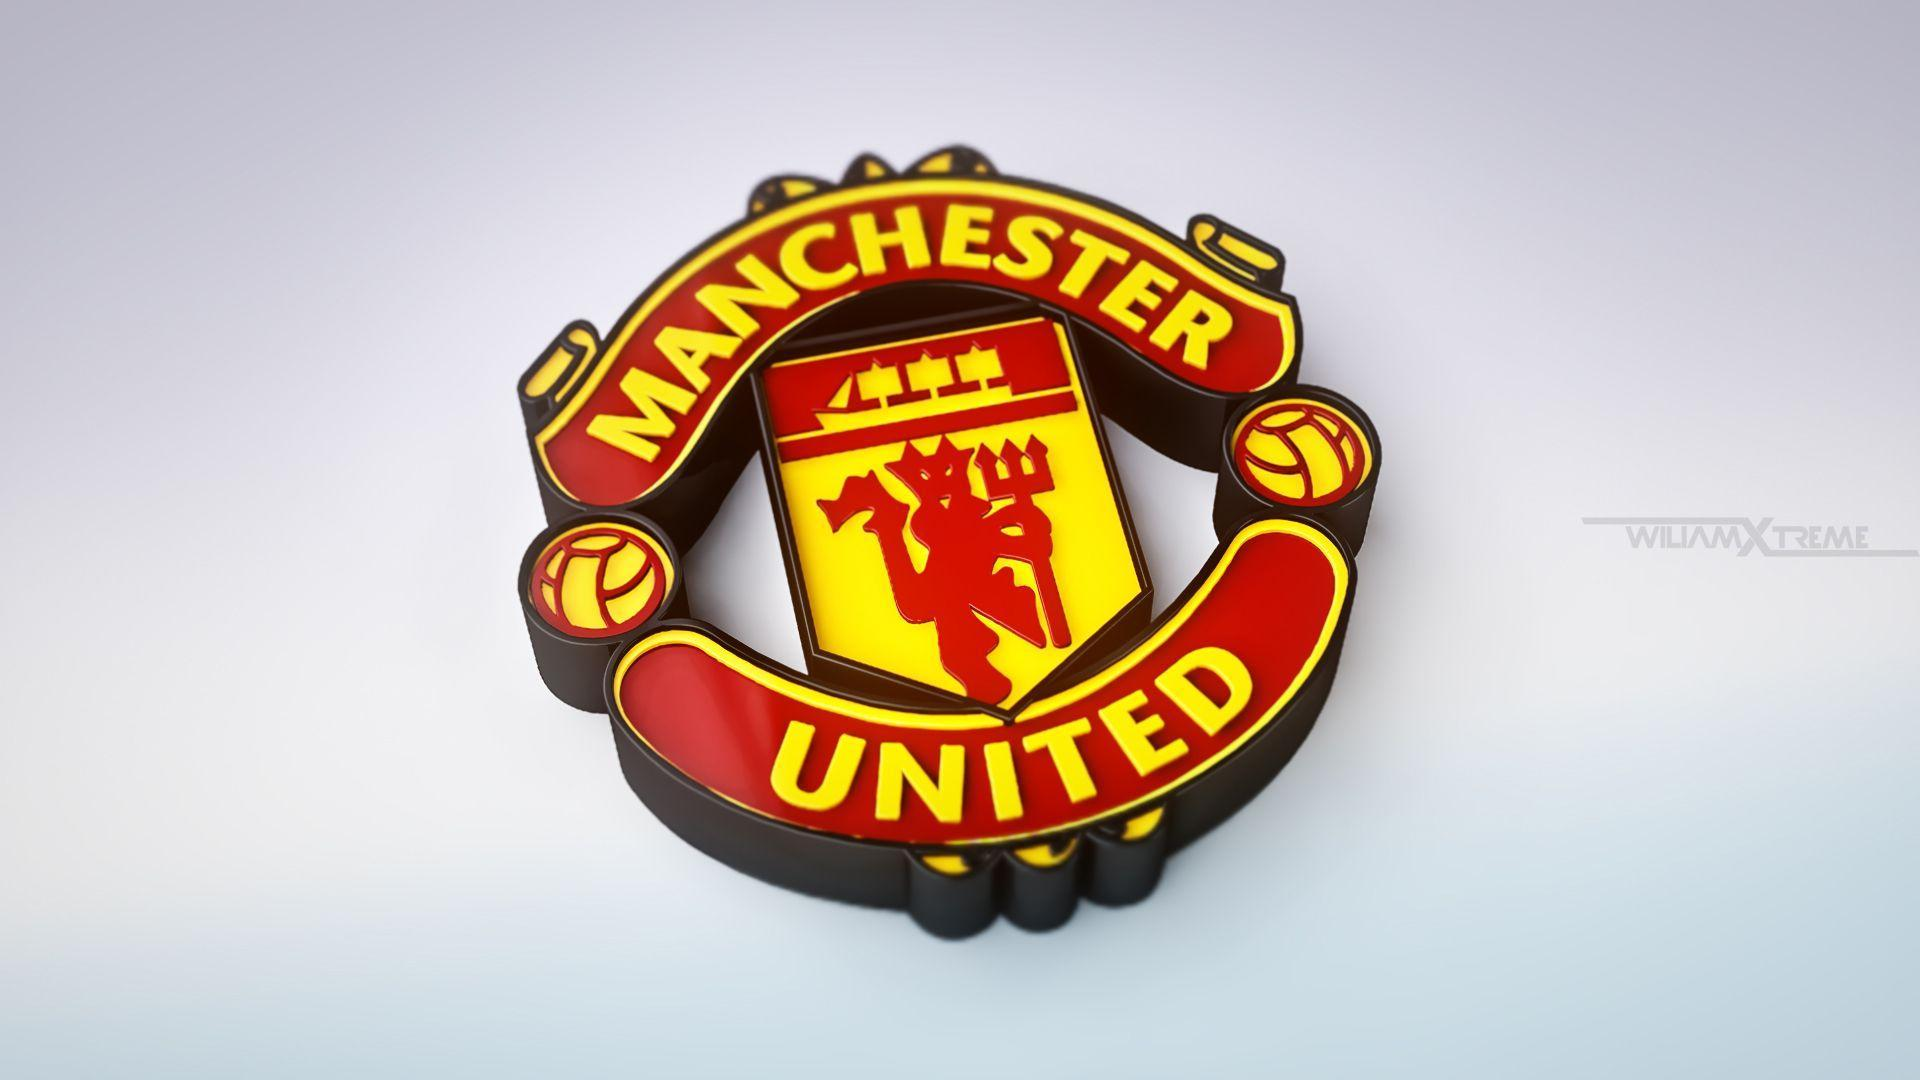 Manchester United Logo Wallpapers HD 2016 1920x1080